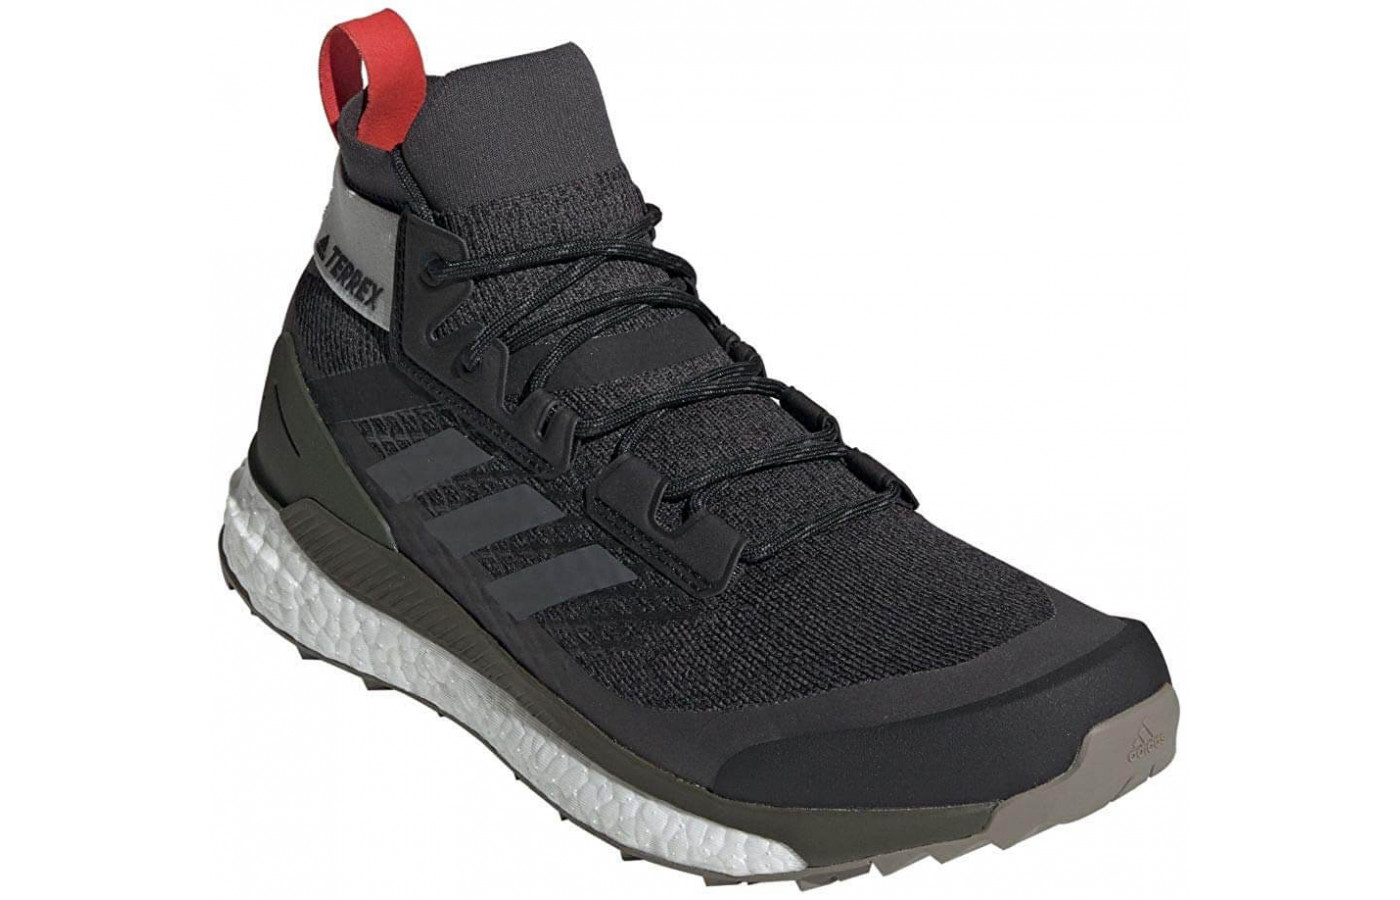 bae00185d9b47 Adidas Outdoor Terrex Free - To Buy or Not in May 2019